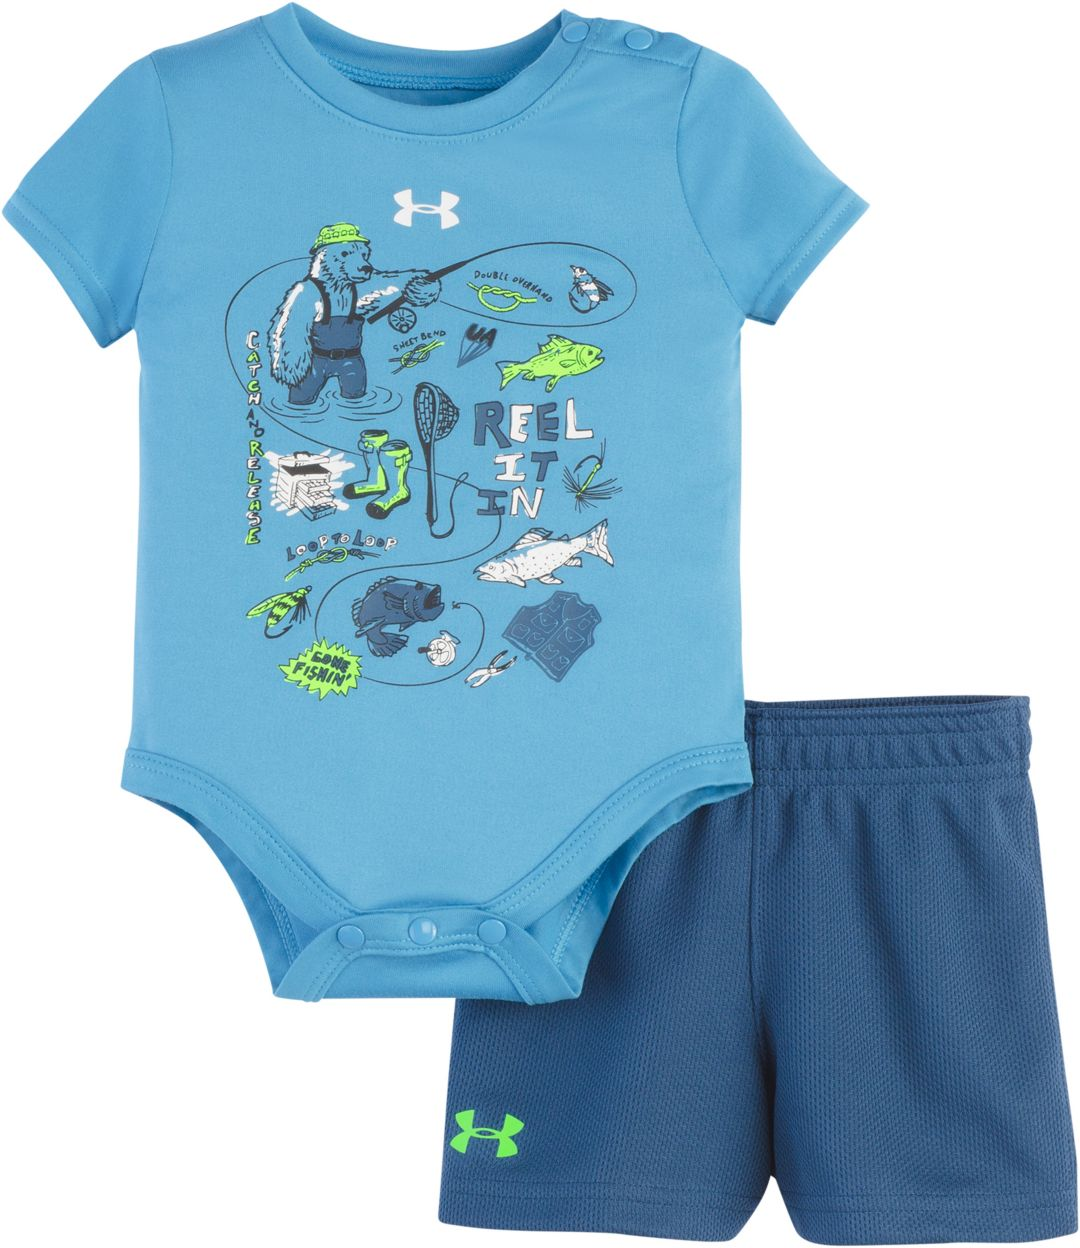 89239d279 Under Armour Toddler Boy's Reel It In 2-Piece Oneise and Shorts Set ...